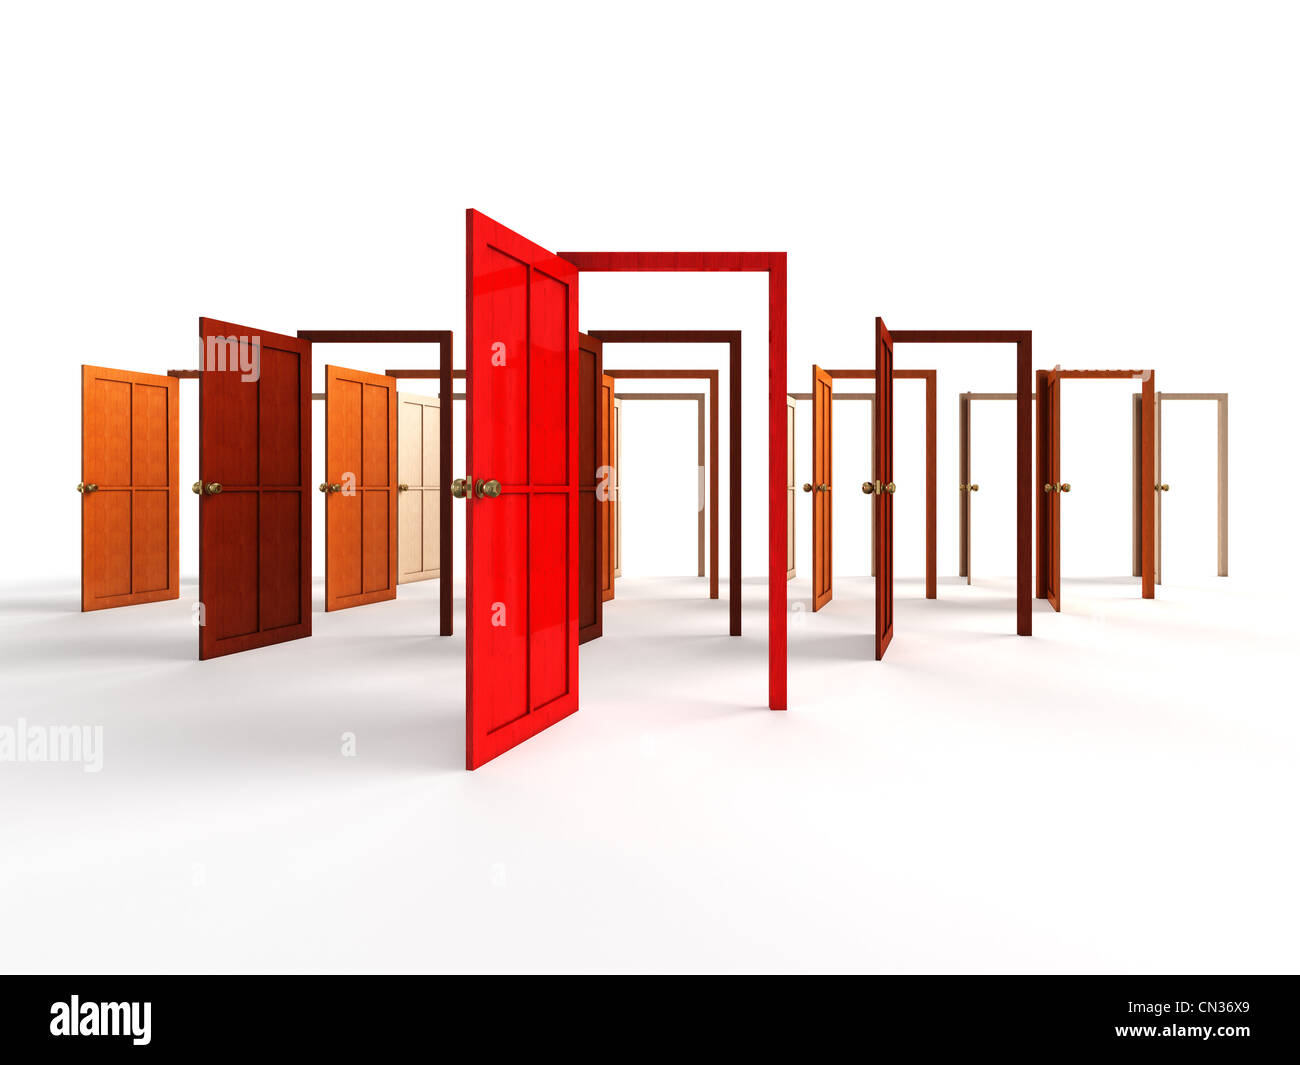 open door welcome animated open doors welcome choice opportunity concept stock photo